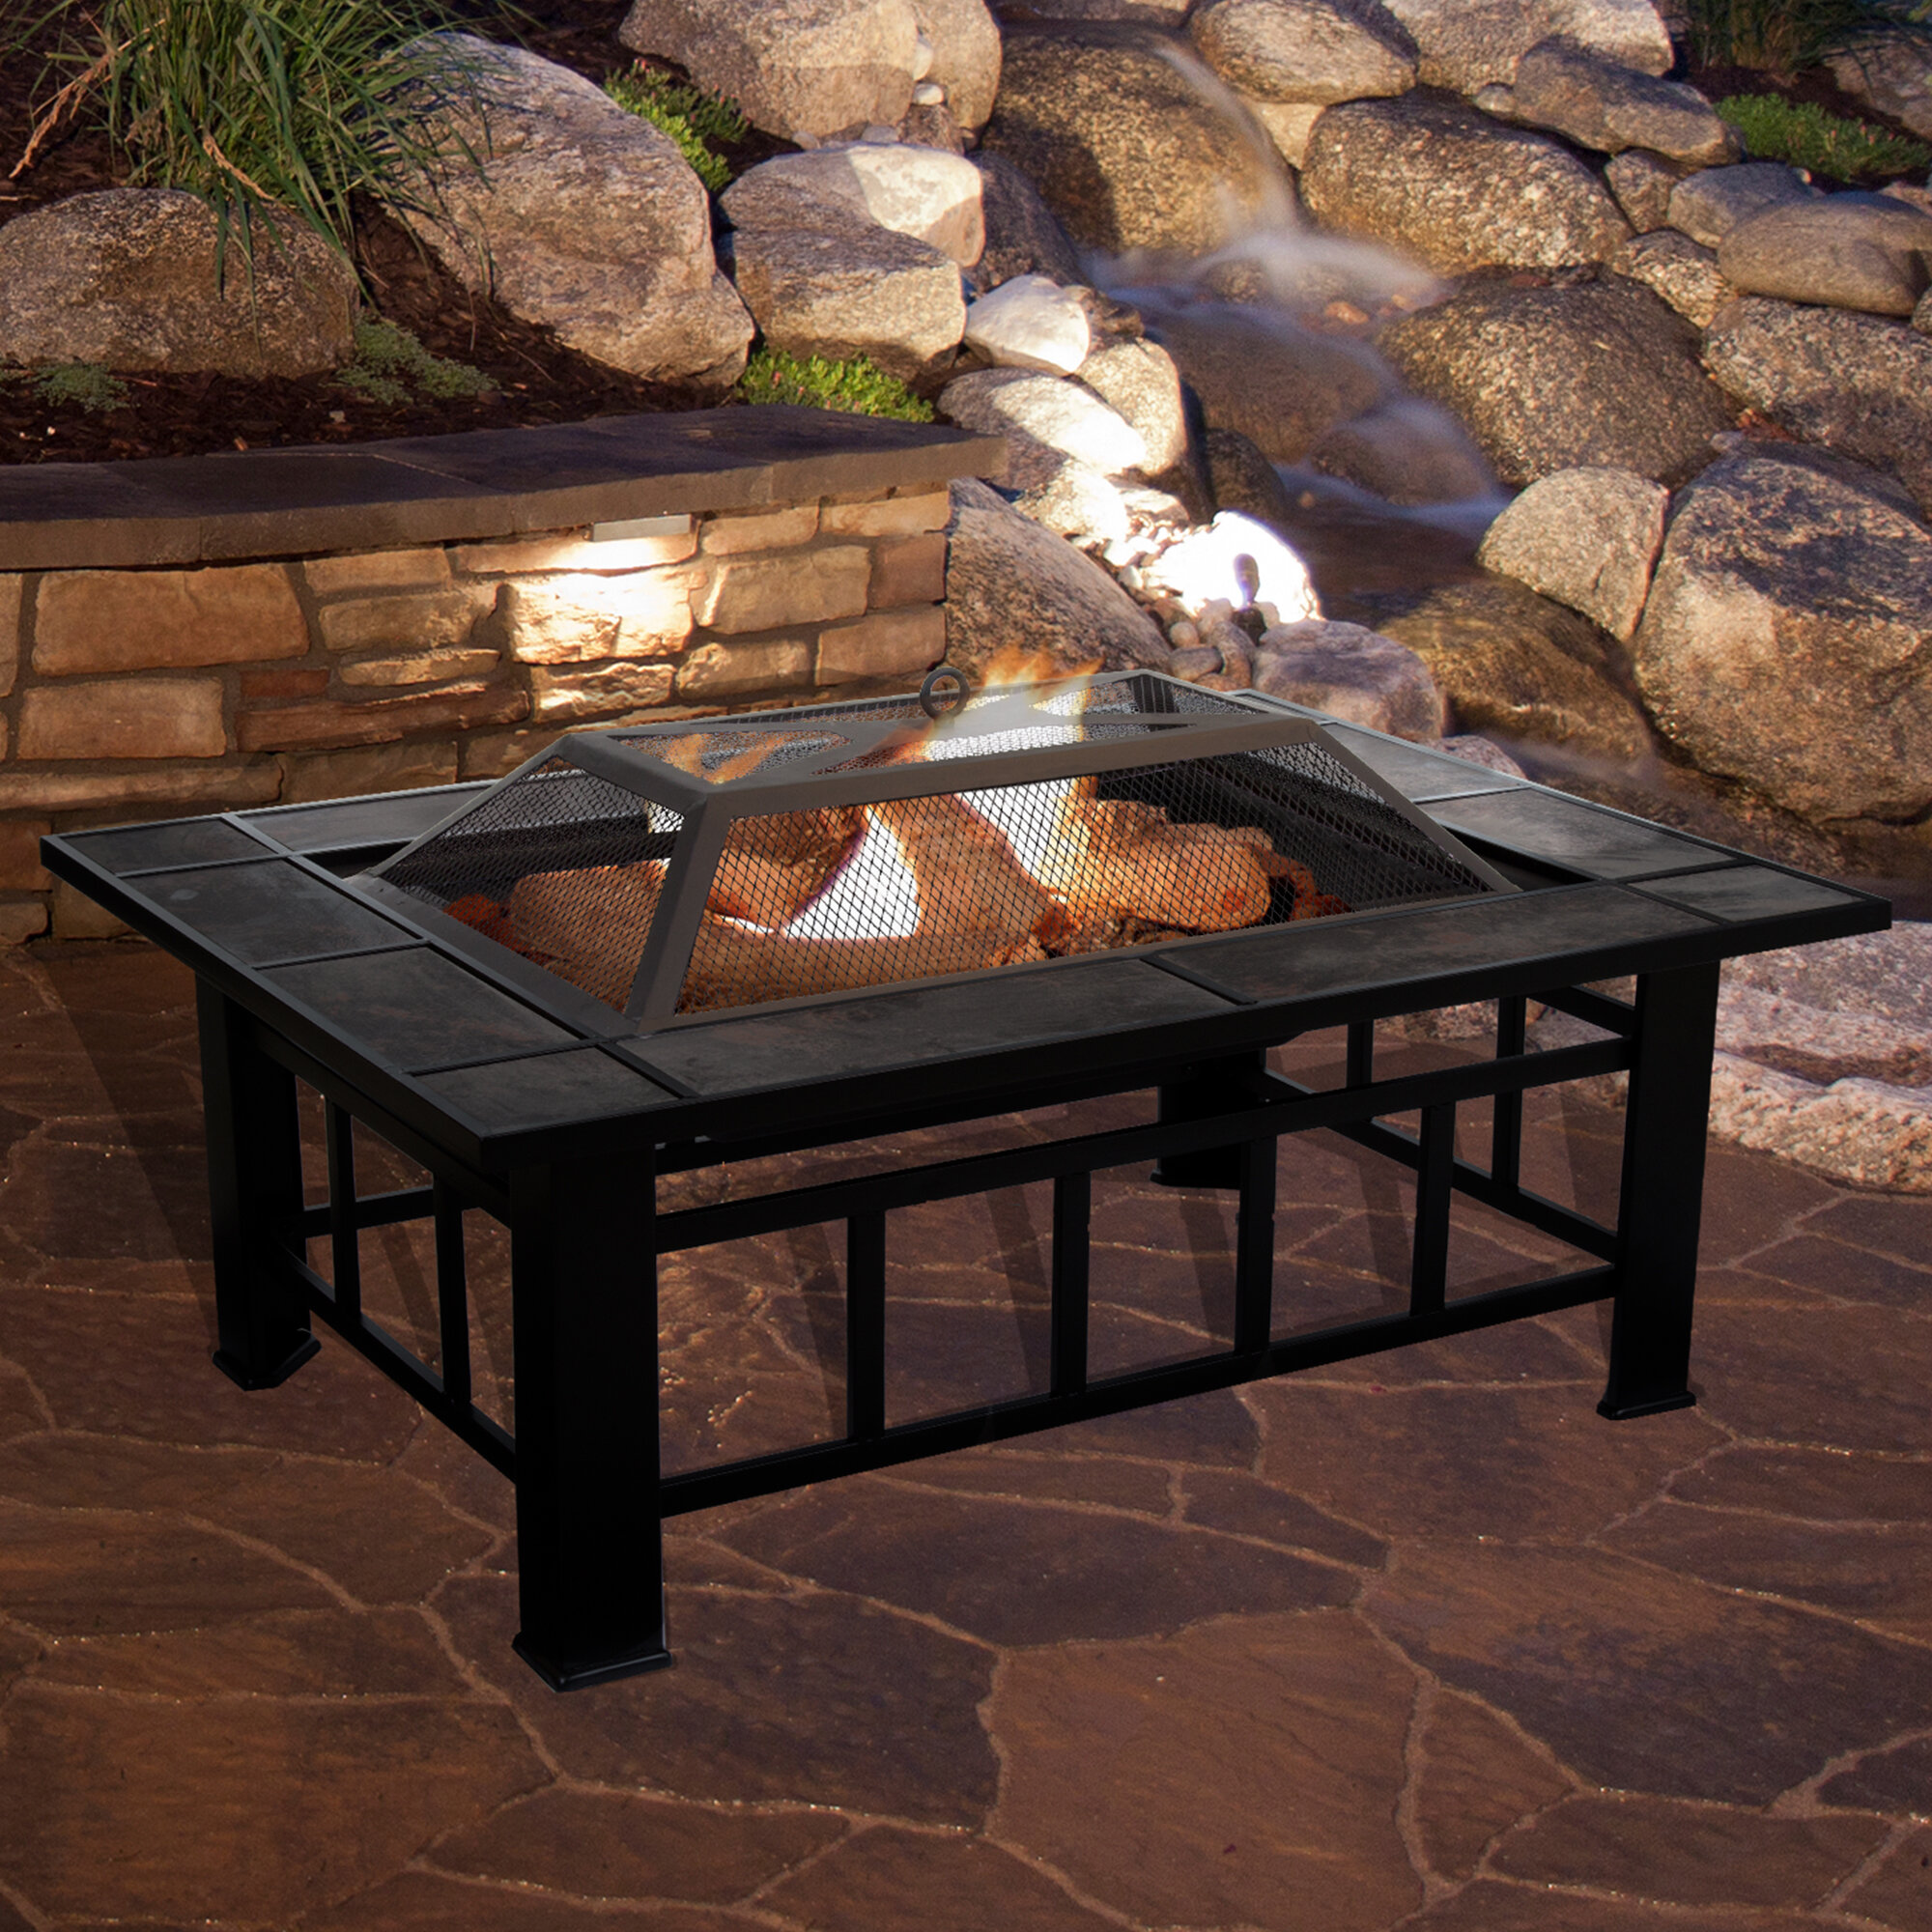 Beau Steel Wood Burning Fire Pit Table